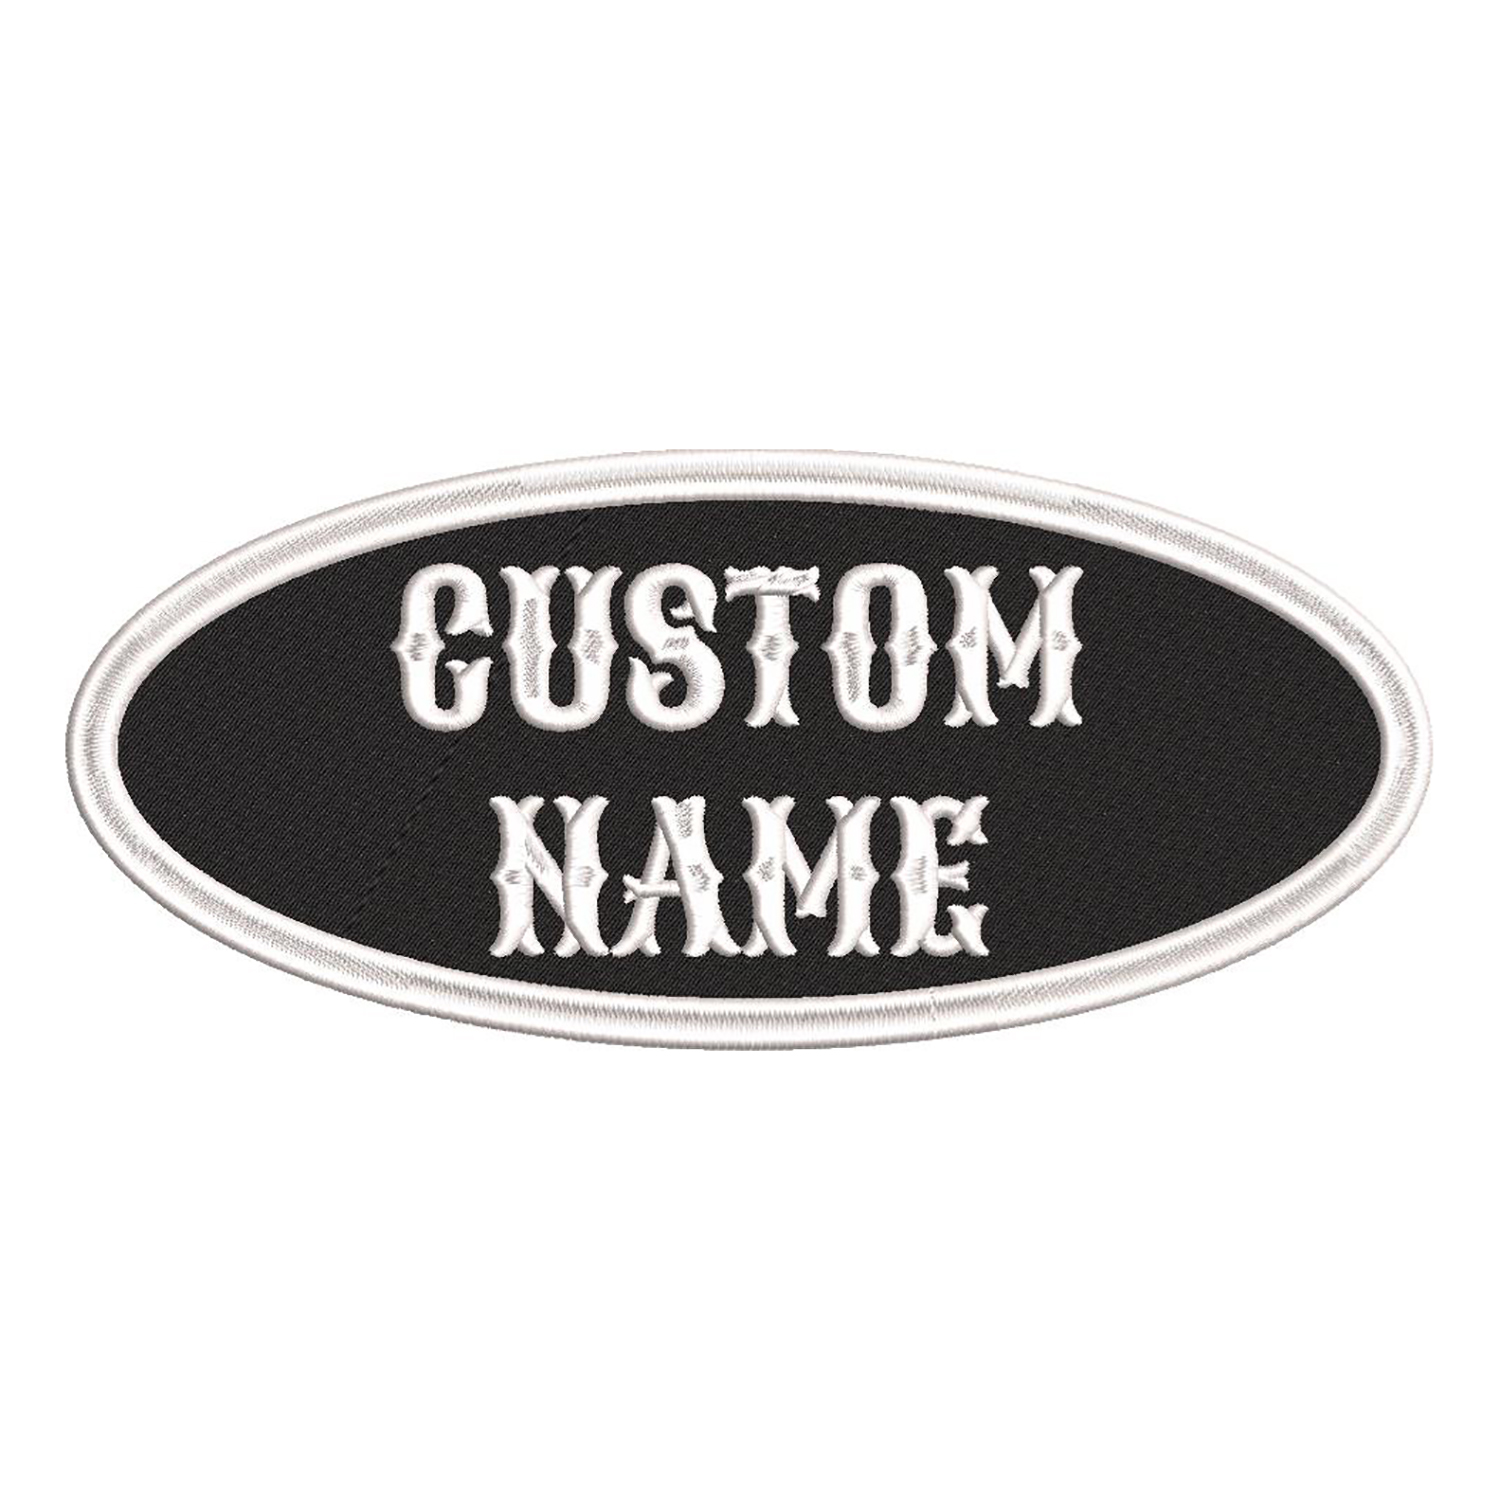 5 inches Oval Custom Embroidered Name Tag Biker Patch